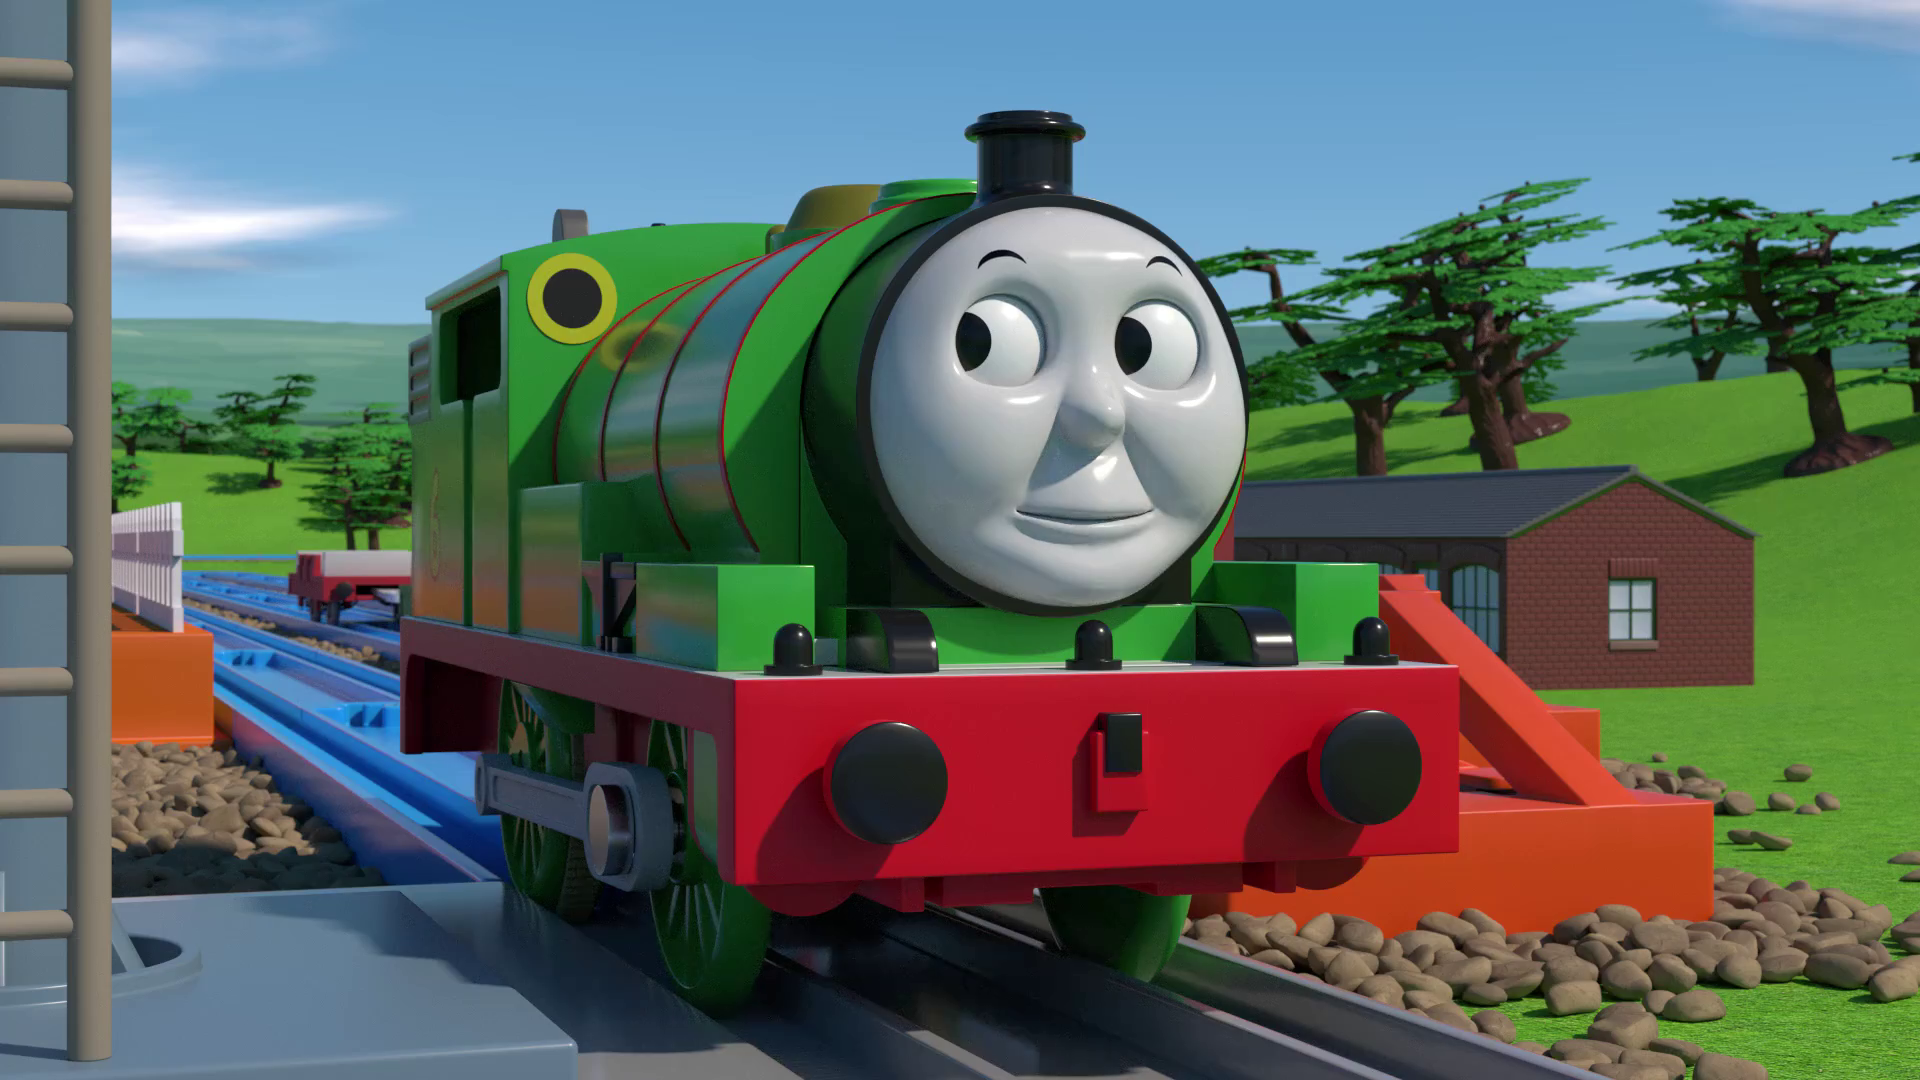 TOMICA Thomas Friends Short 46 Percy The Pony YouTube 67